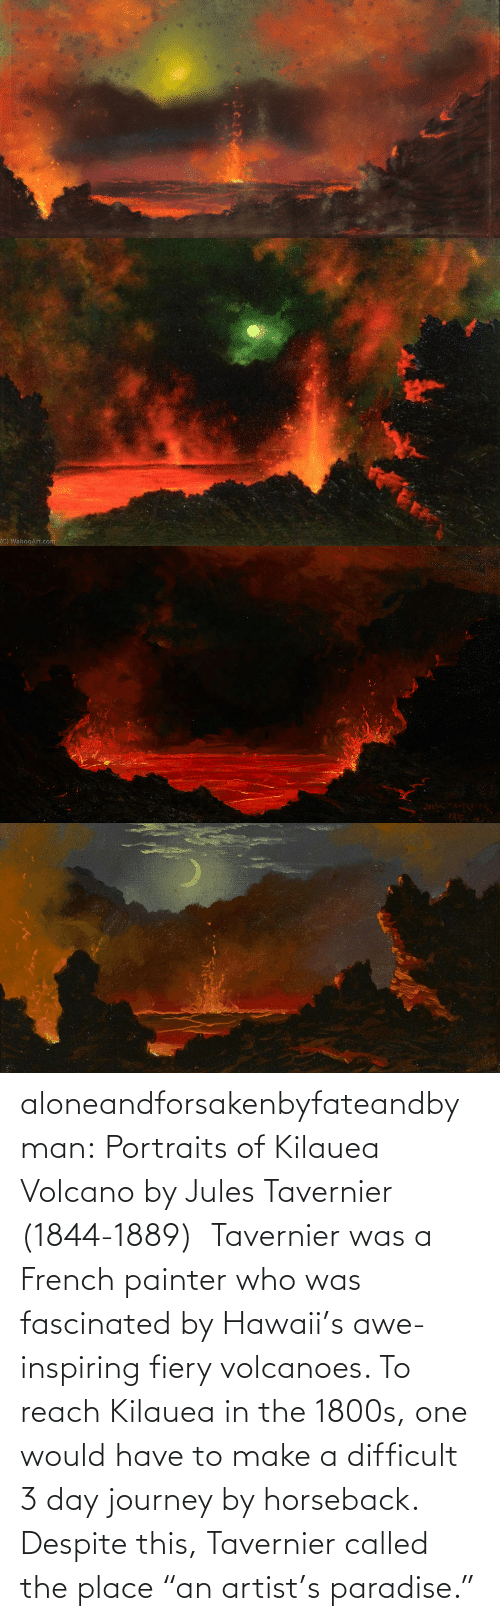 """Volcano: aloneandforsakenbyfateandbyman:  Portraits of Kilauea Volcano by Jules Tavernier (1844-1889)   Tavernier was a French painter who was fascinated by Hawaii's awe-inspiring fiery volcanoes. To reach Kilauea in the 1800s, one would have to make a difficult 3 day journey by horseback. Despite this, Tavernier called the place """"an artist's paradise."""""""